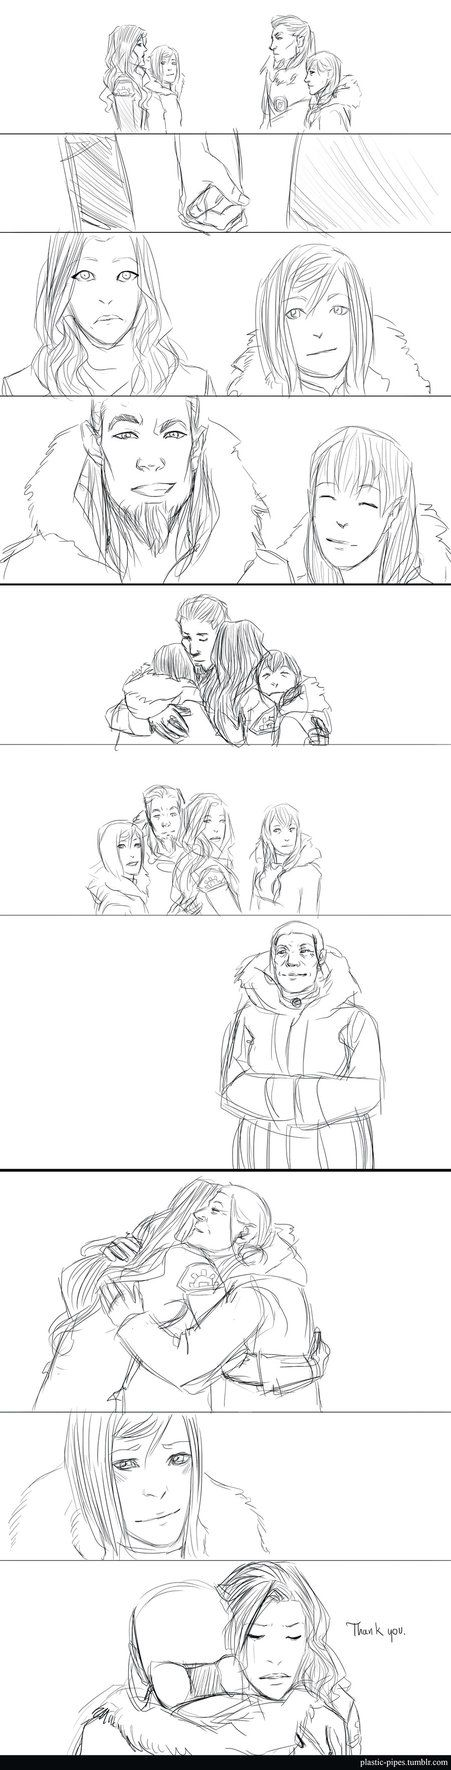 """""""Coming Home by plastic-pipes on DeviantArt"""" I love finding theses kinds of comic...strips."""